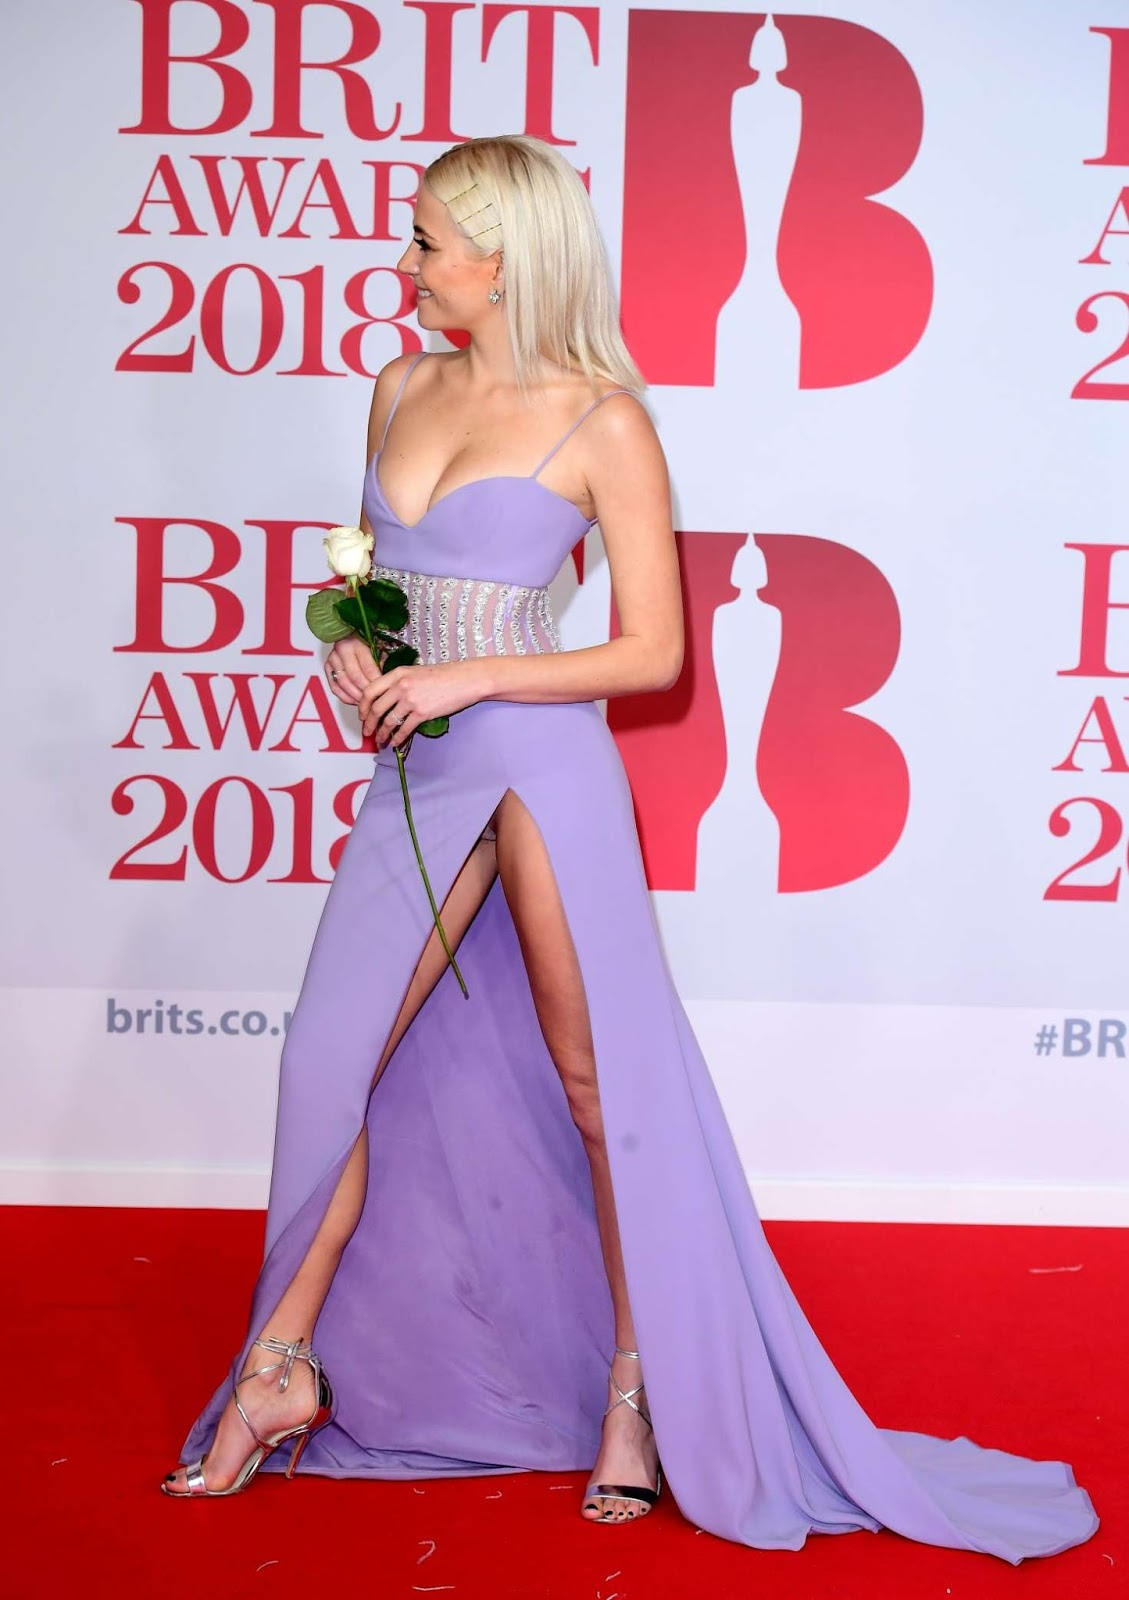 Pixie Lott suffers embarrassing wardrobe malfunction